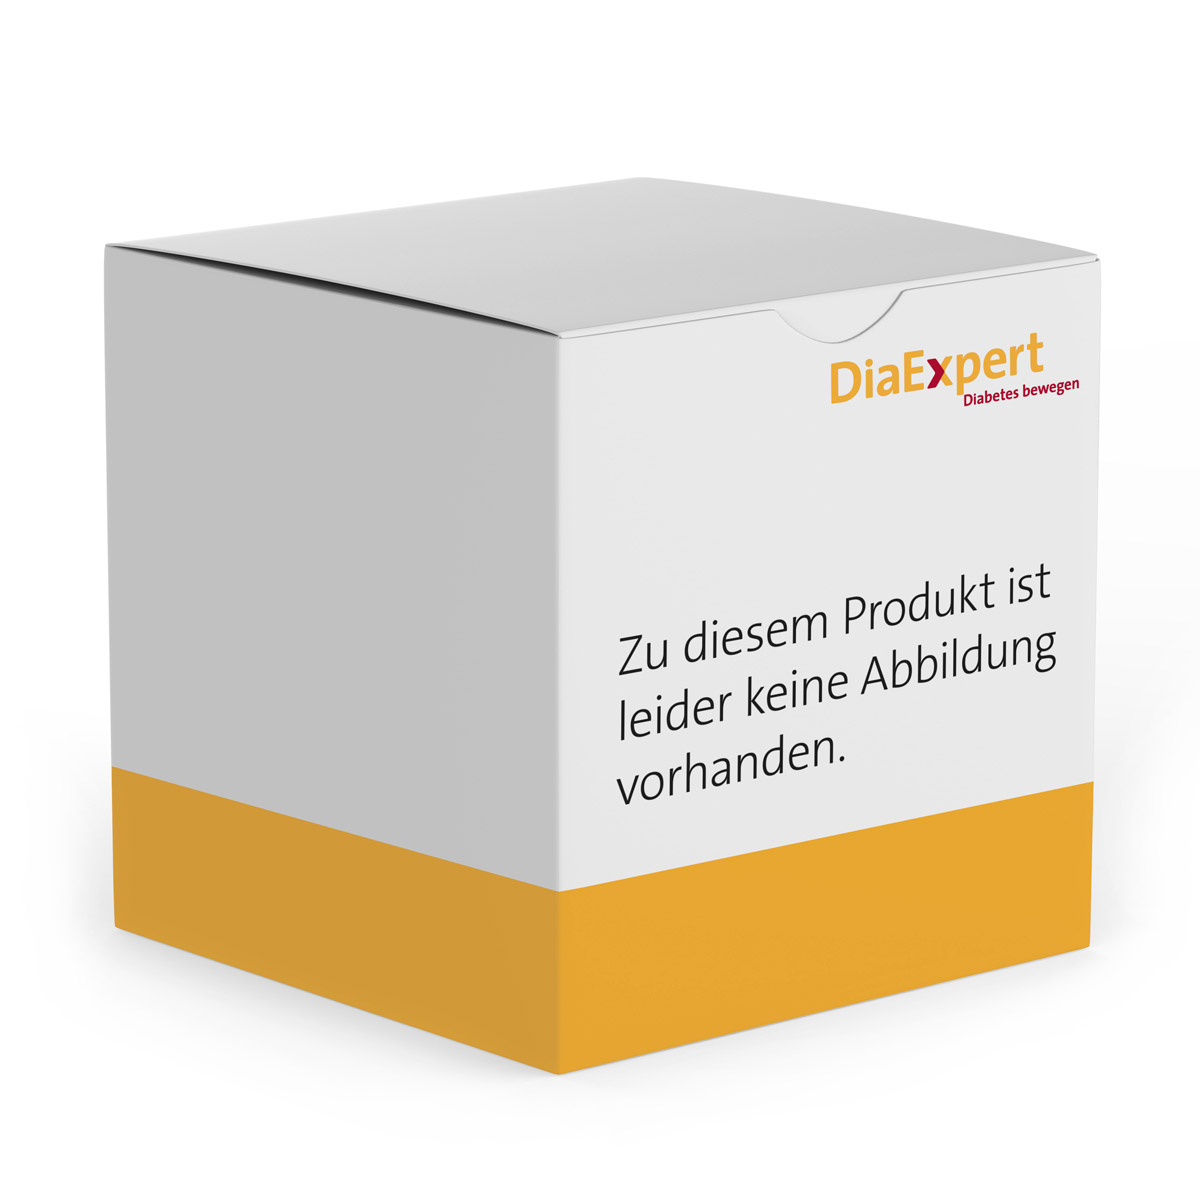 Accu-Chek Insight Adapter und Schlauch